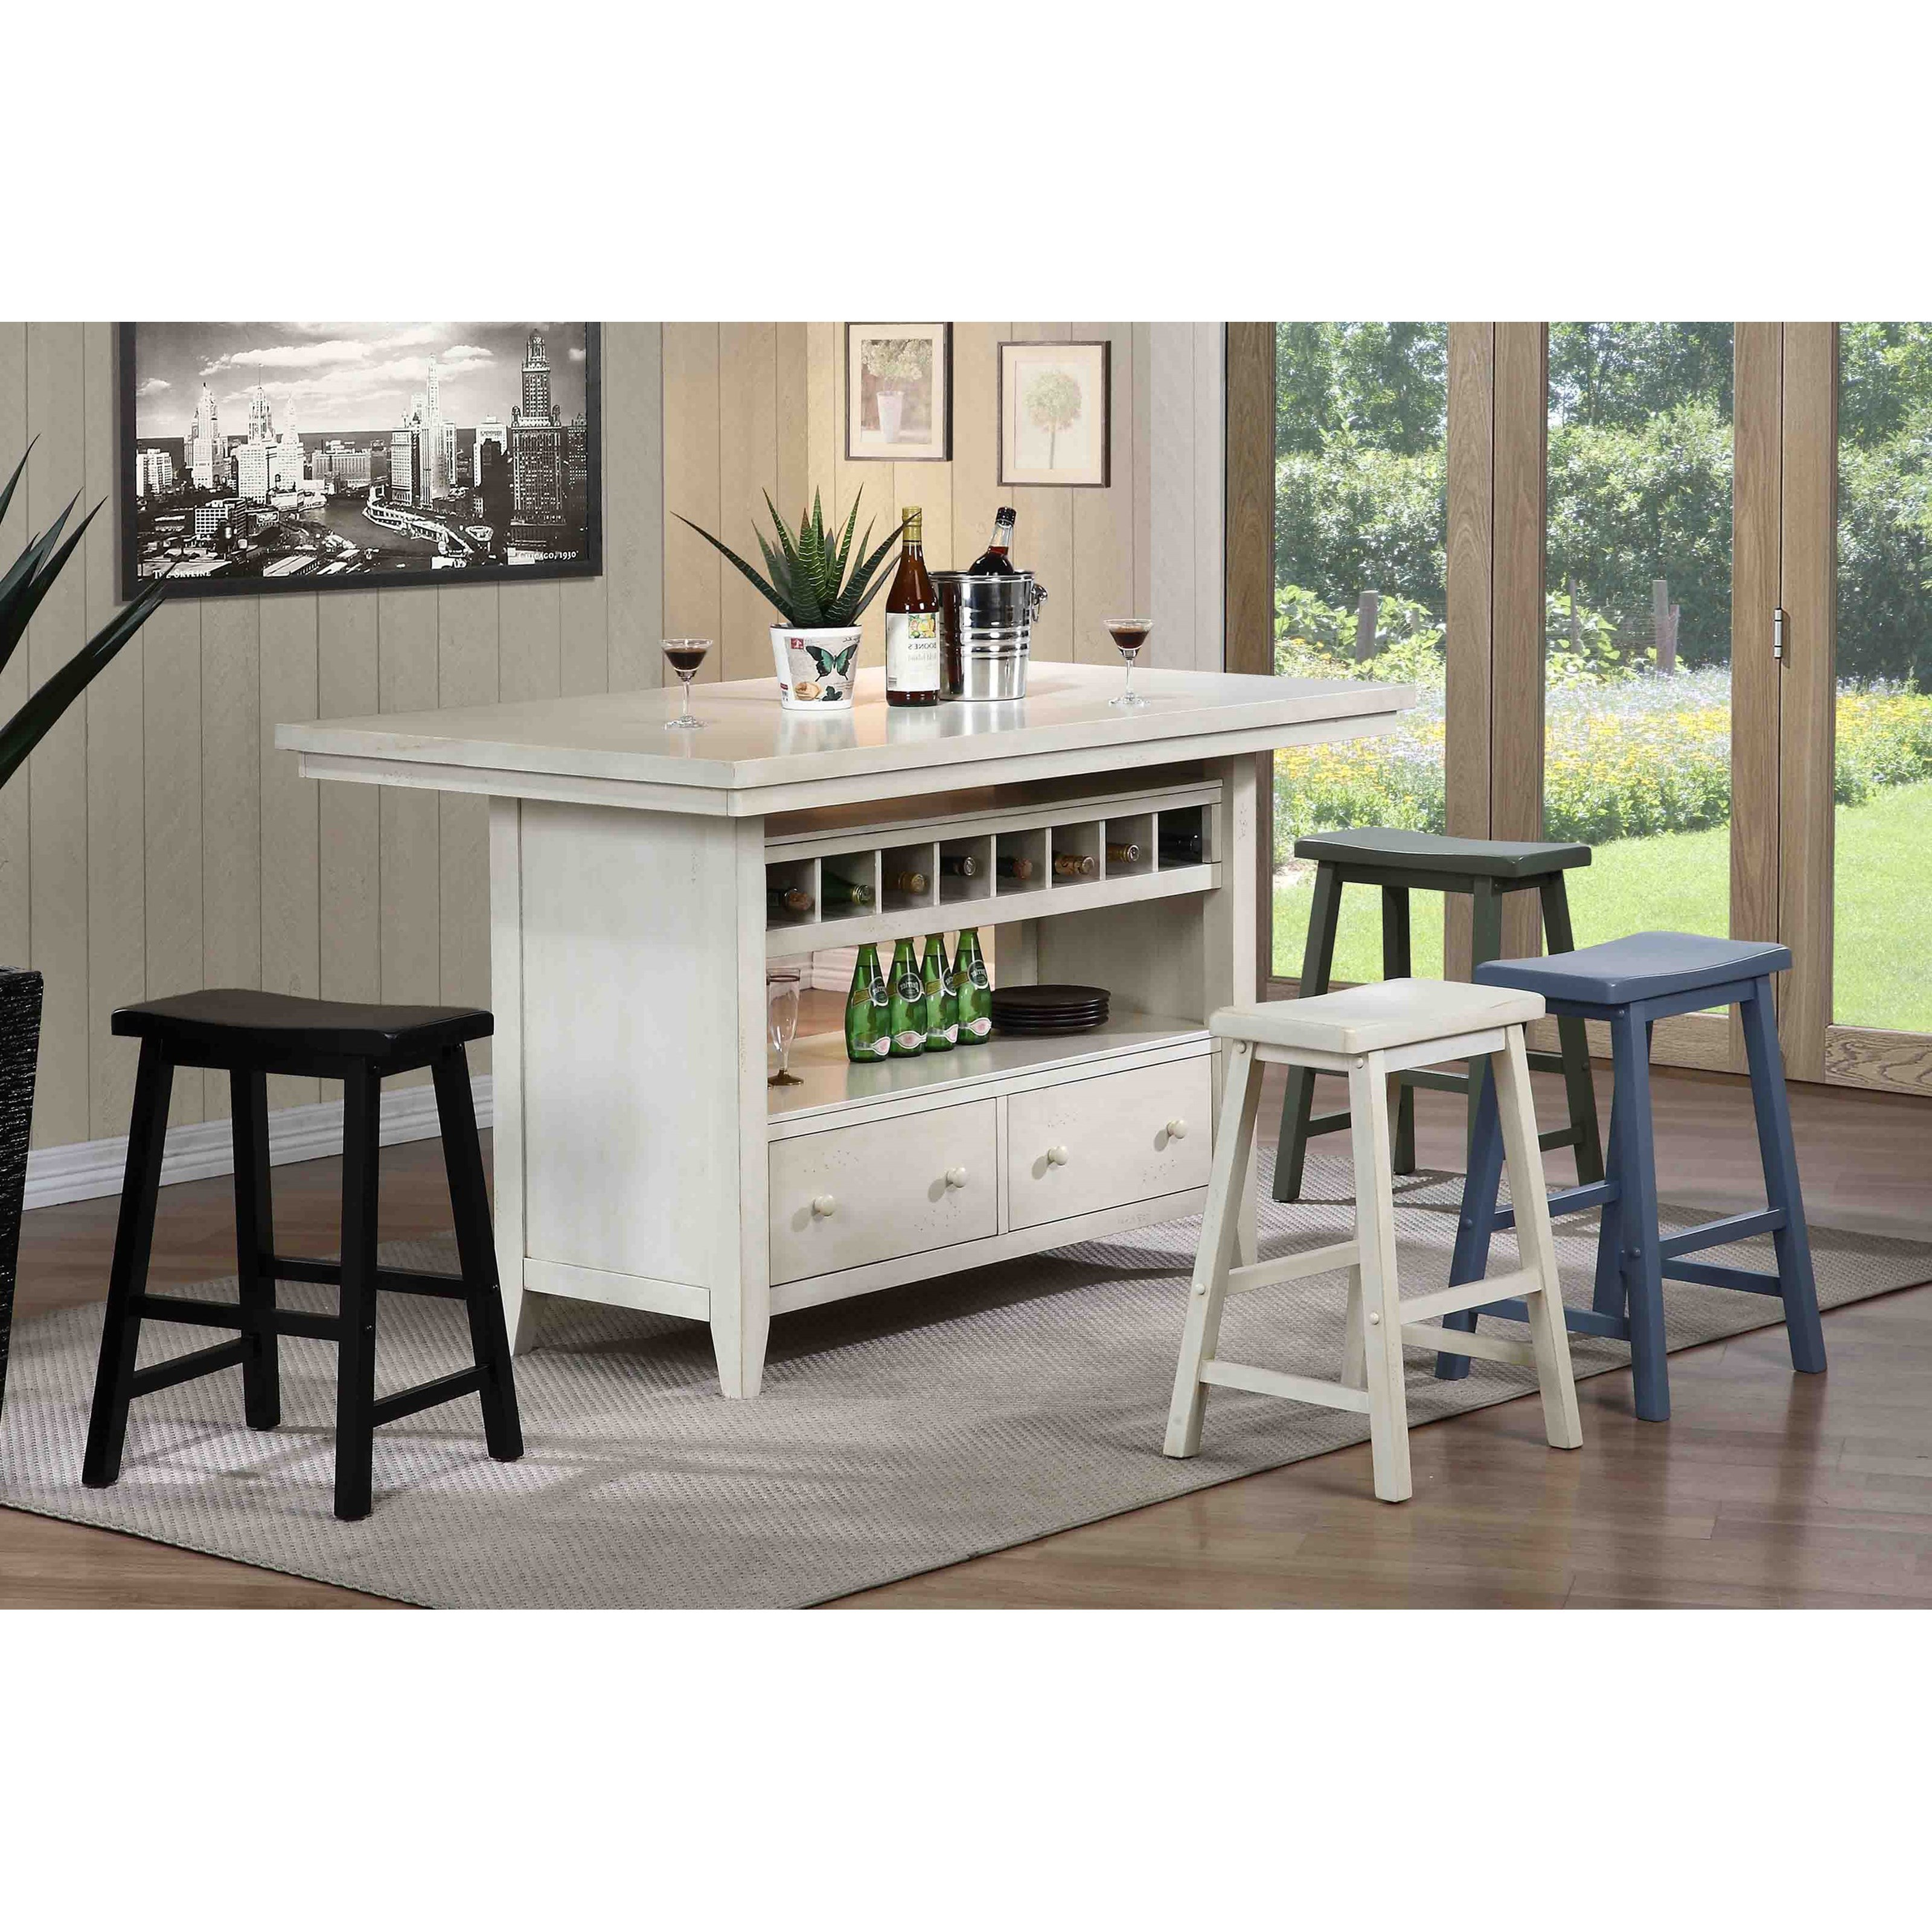 E c i furniture dining casual kitchen island group dunk for Casual home kitchen island